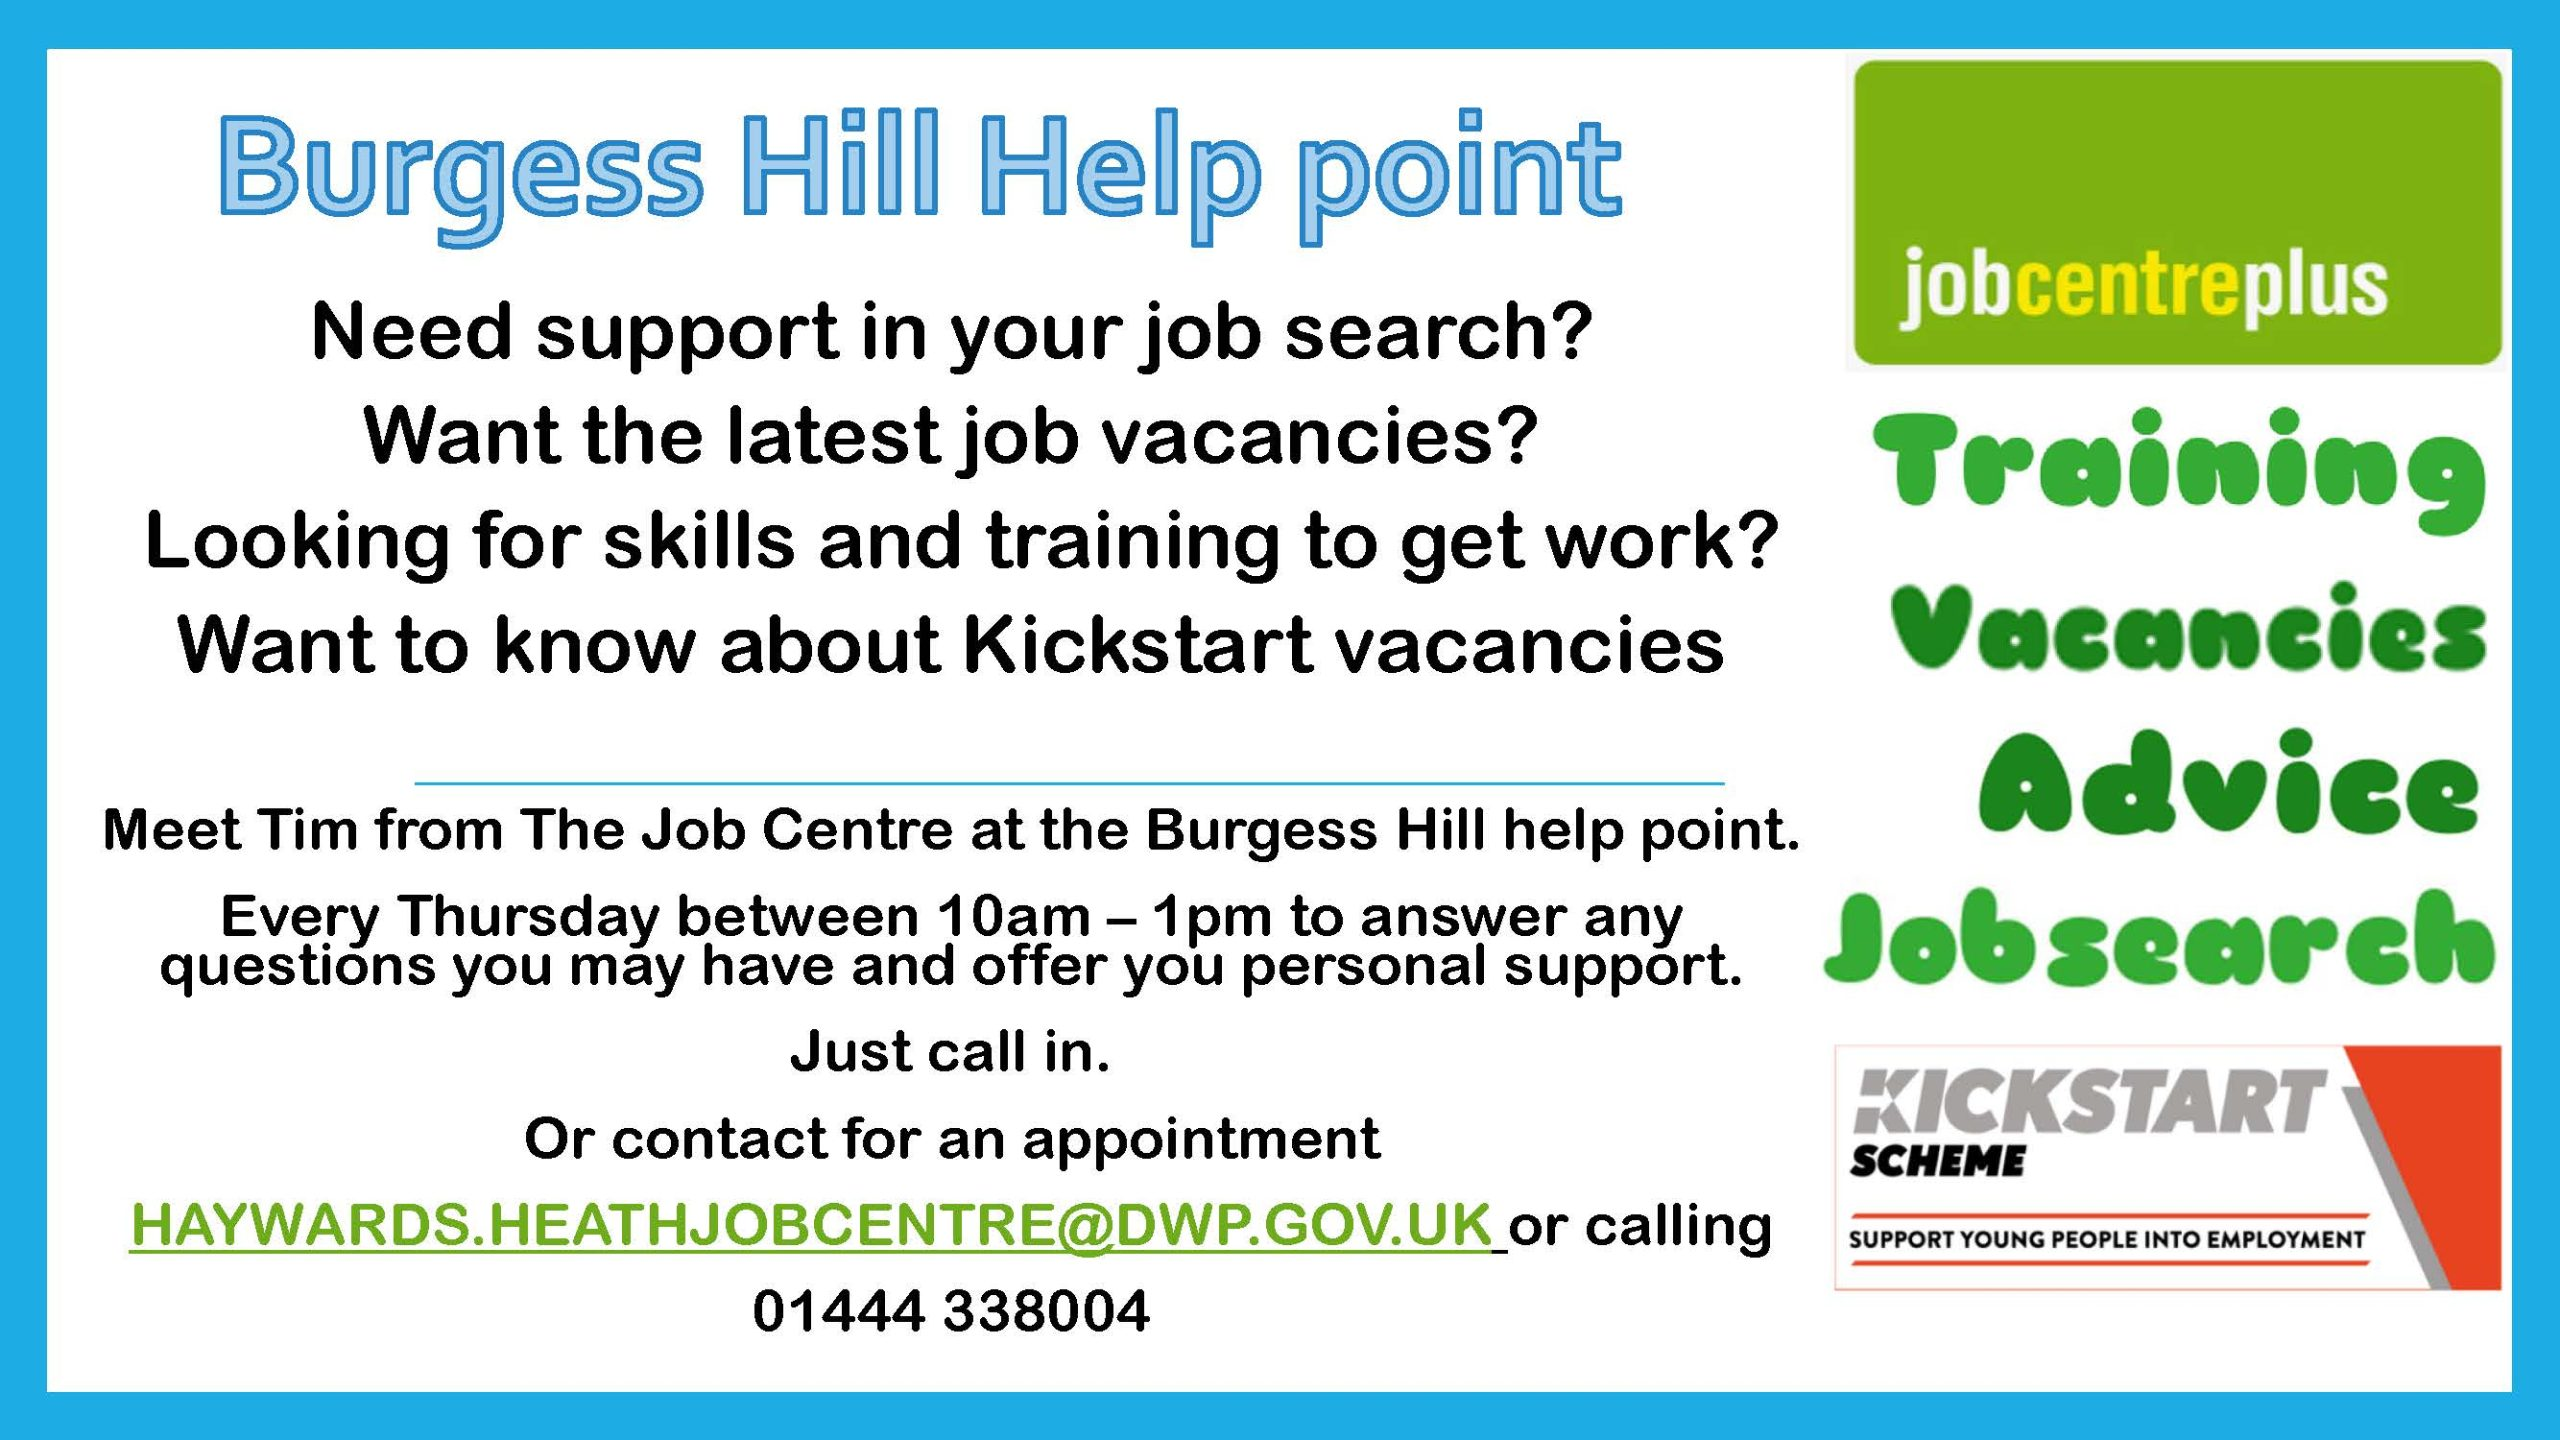 Job Centre in the Help Point